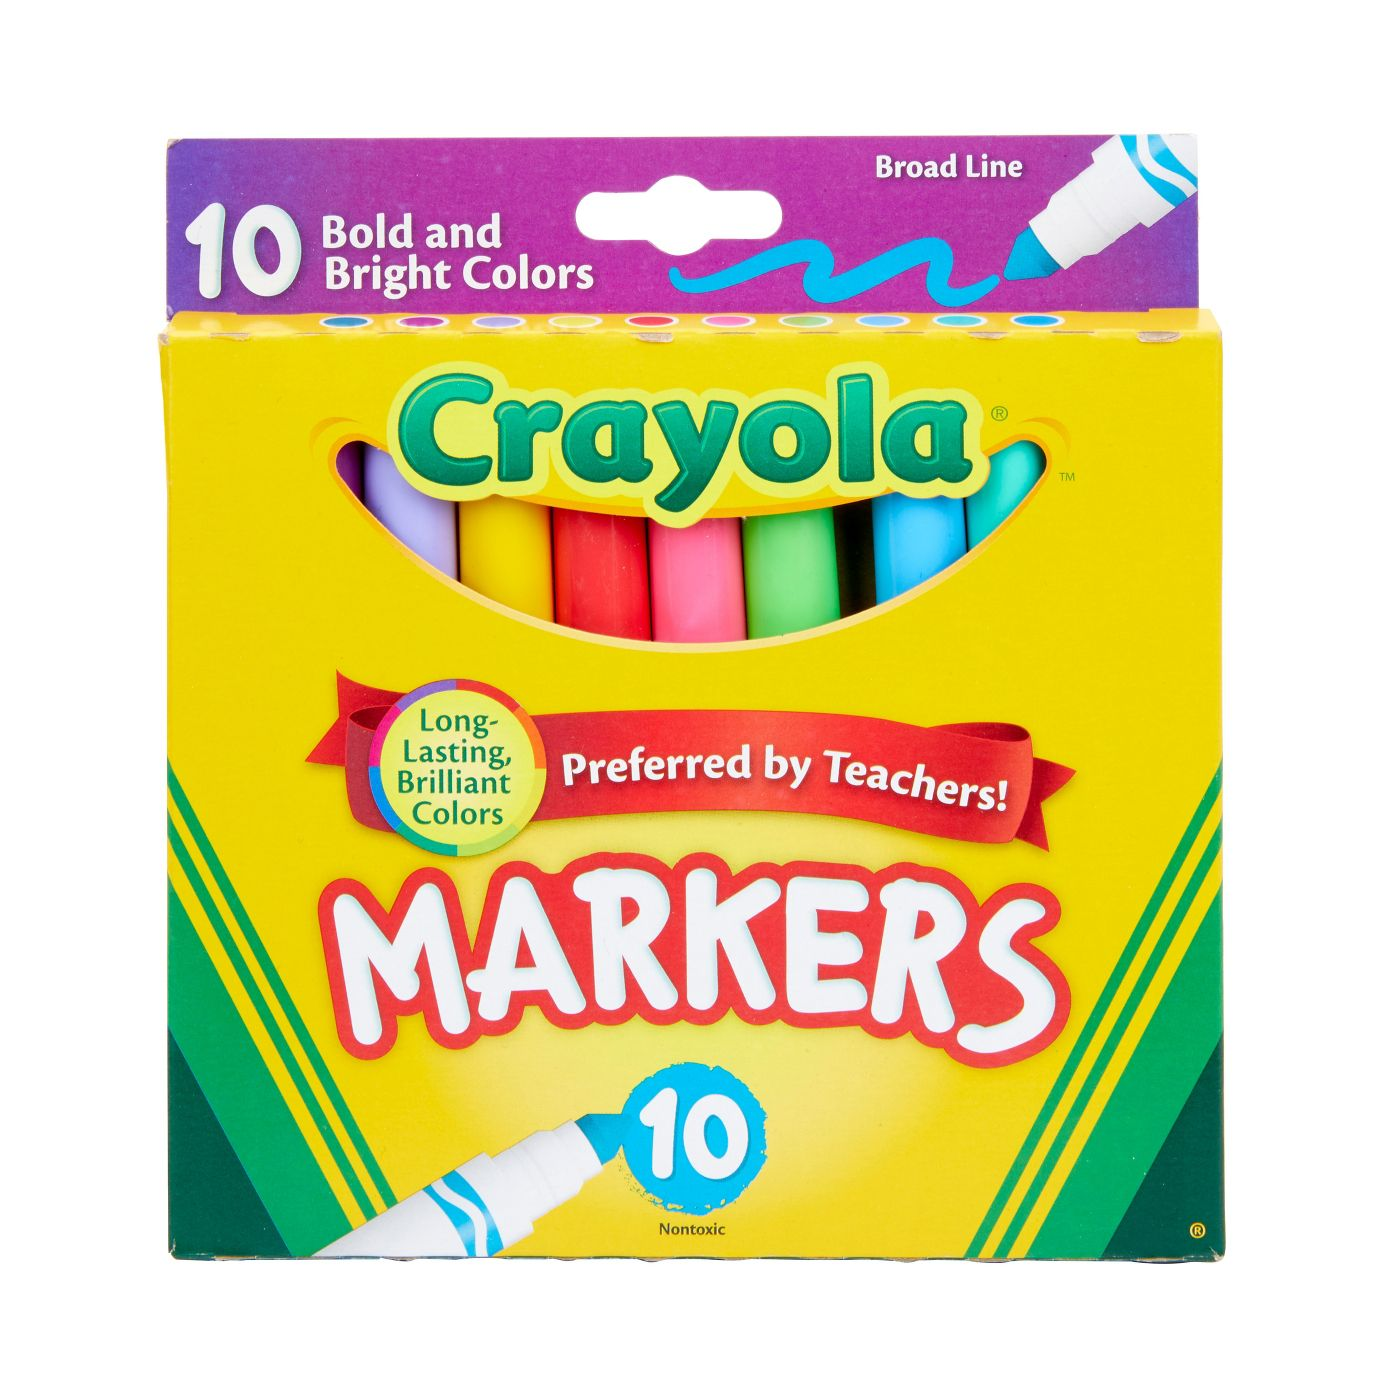 10-Count Crayola Bold and Bright Broadline Markers